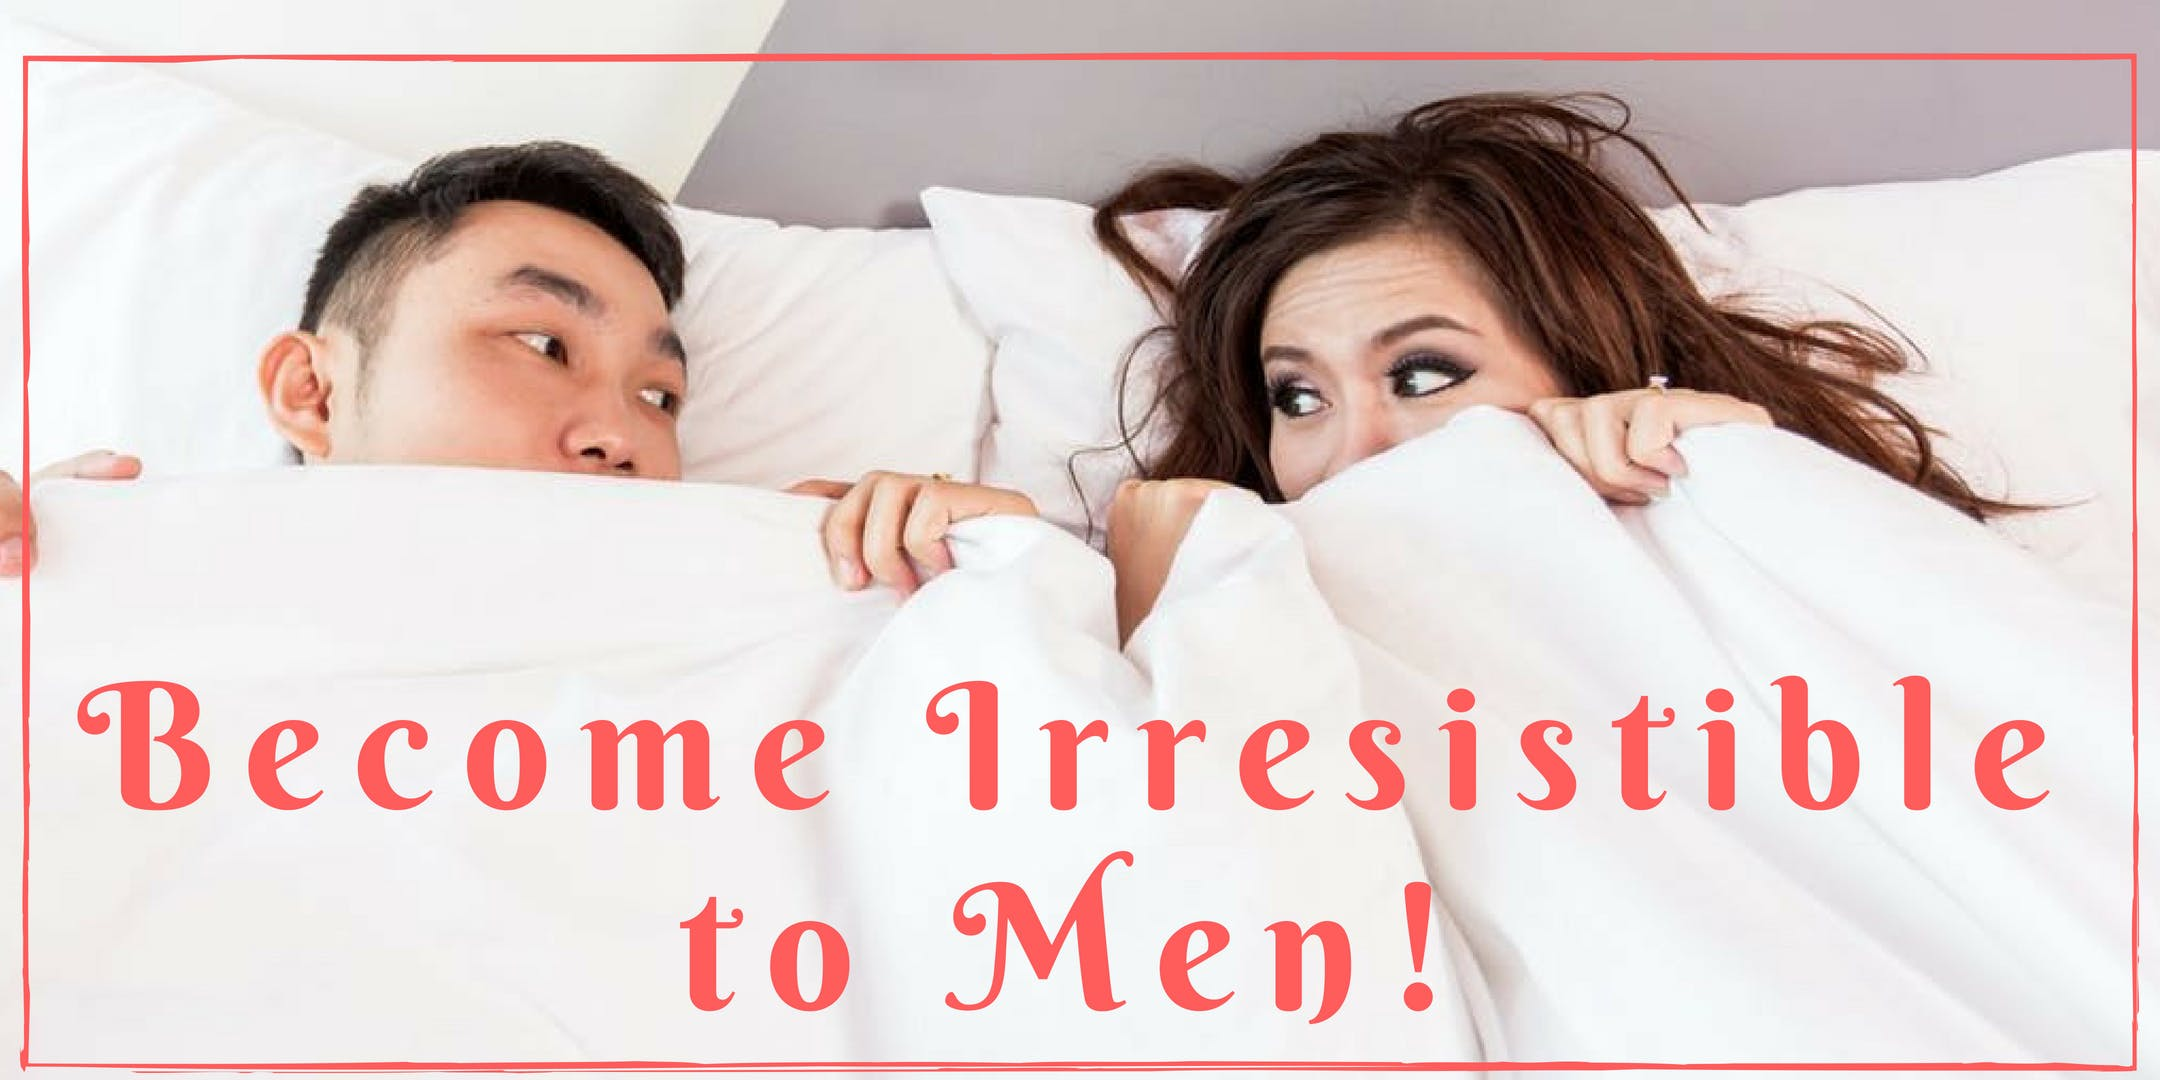 Irresistible 101 - An online Masterclass for Women Looking for Men